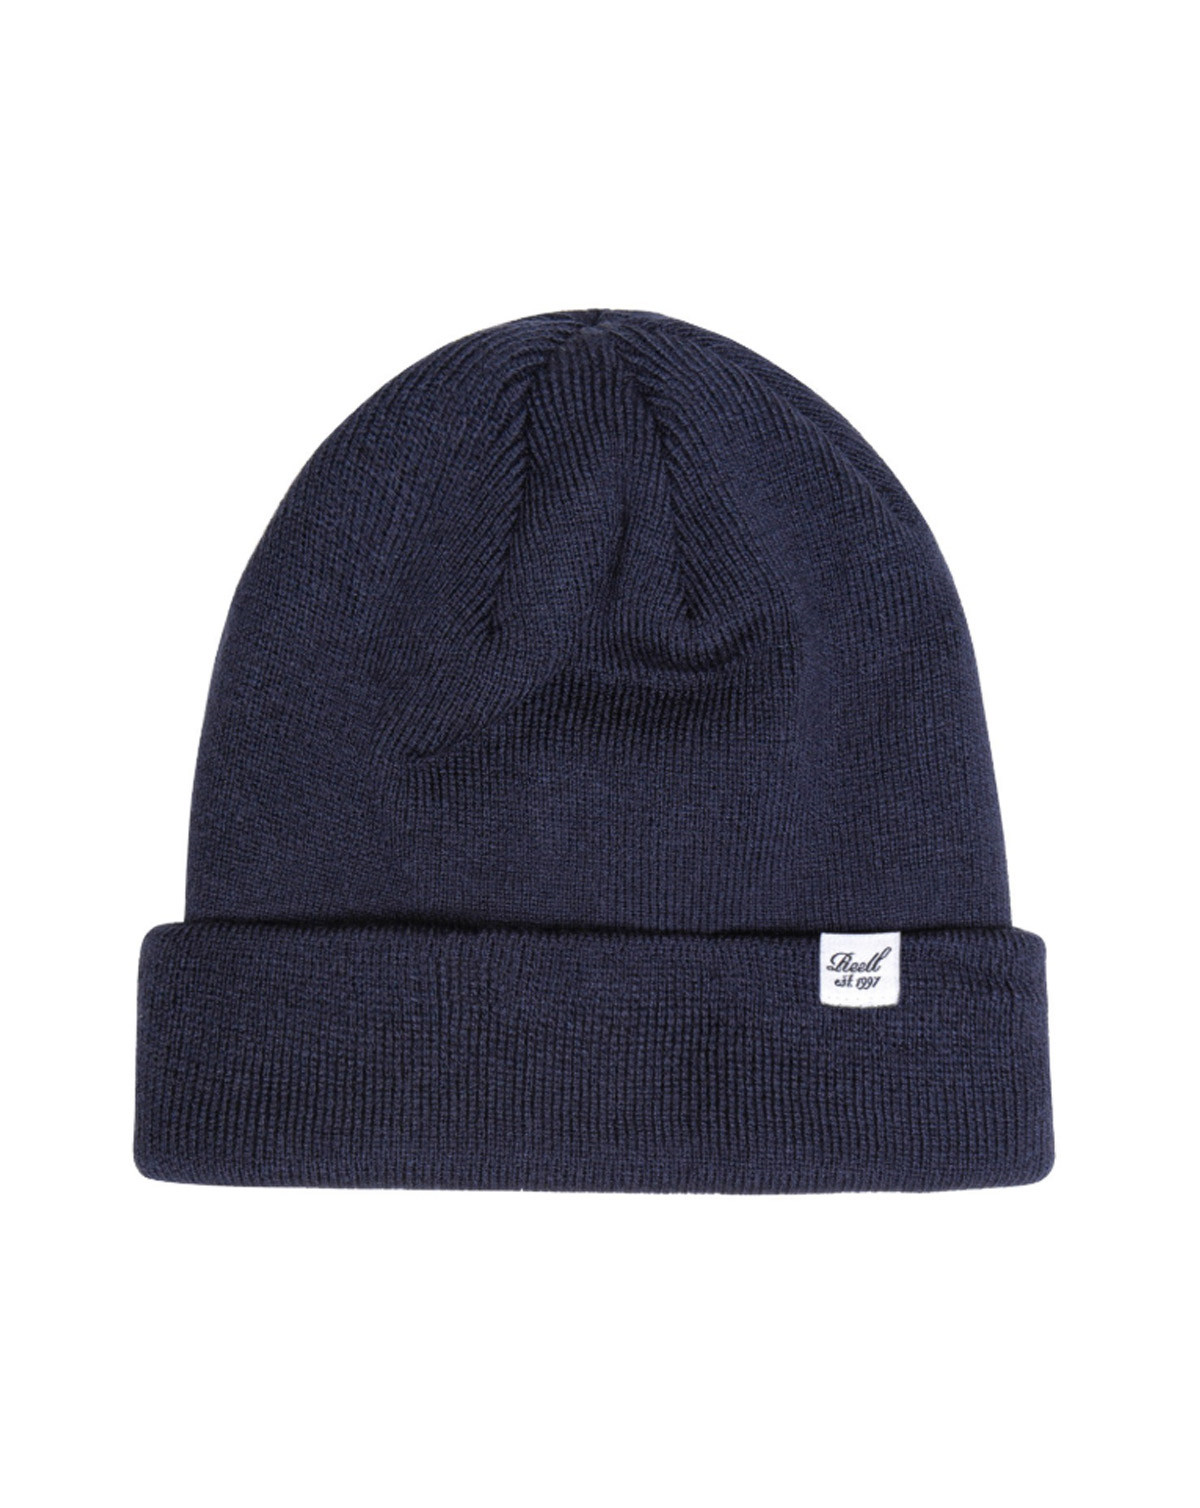 Image of   Reell Beanie (Navy, One Size)